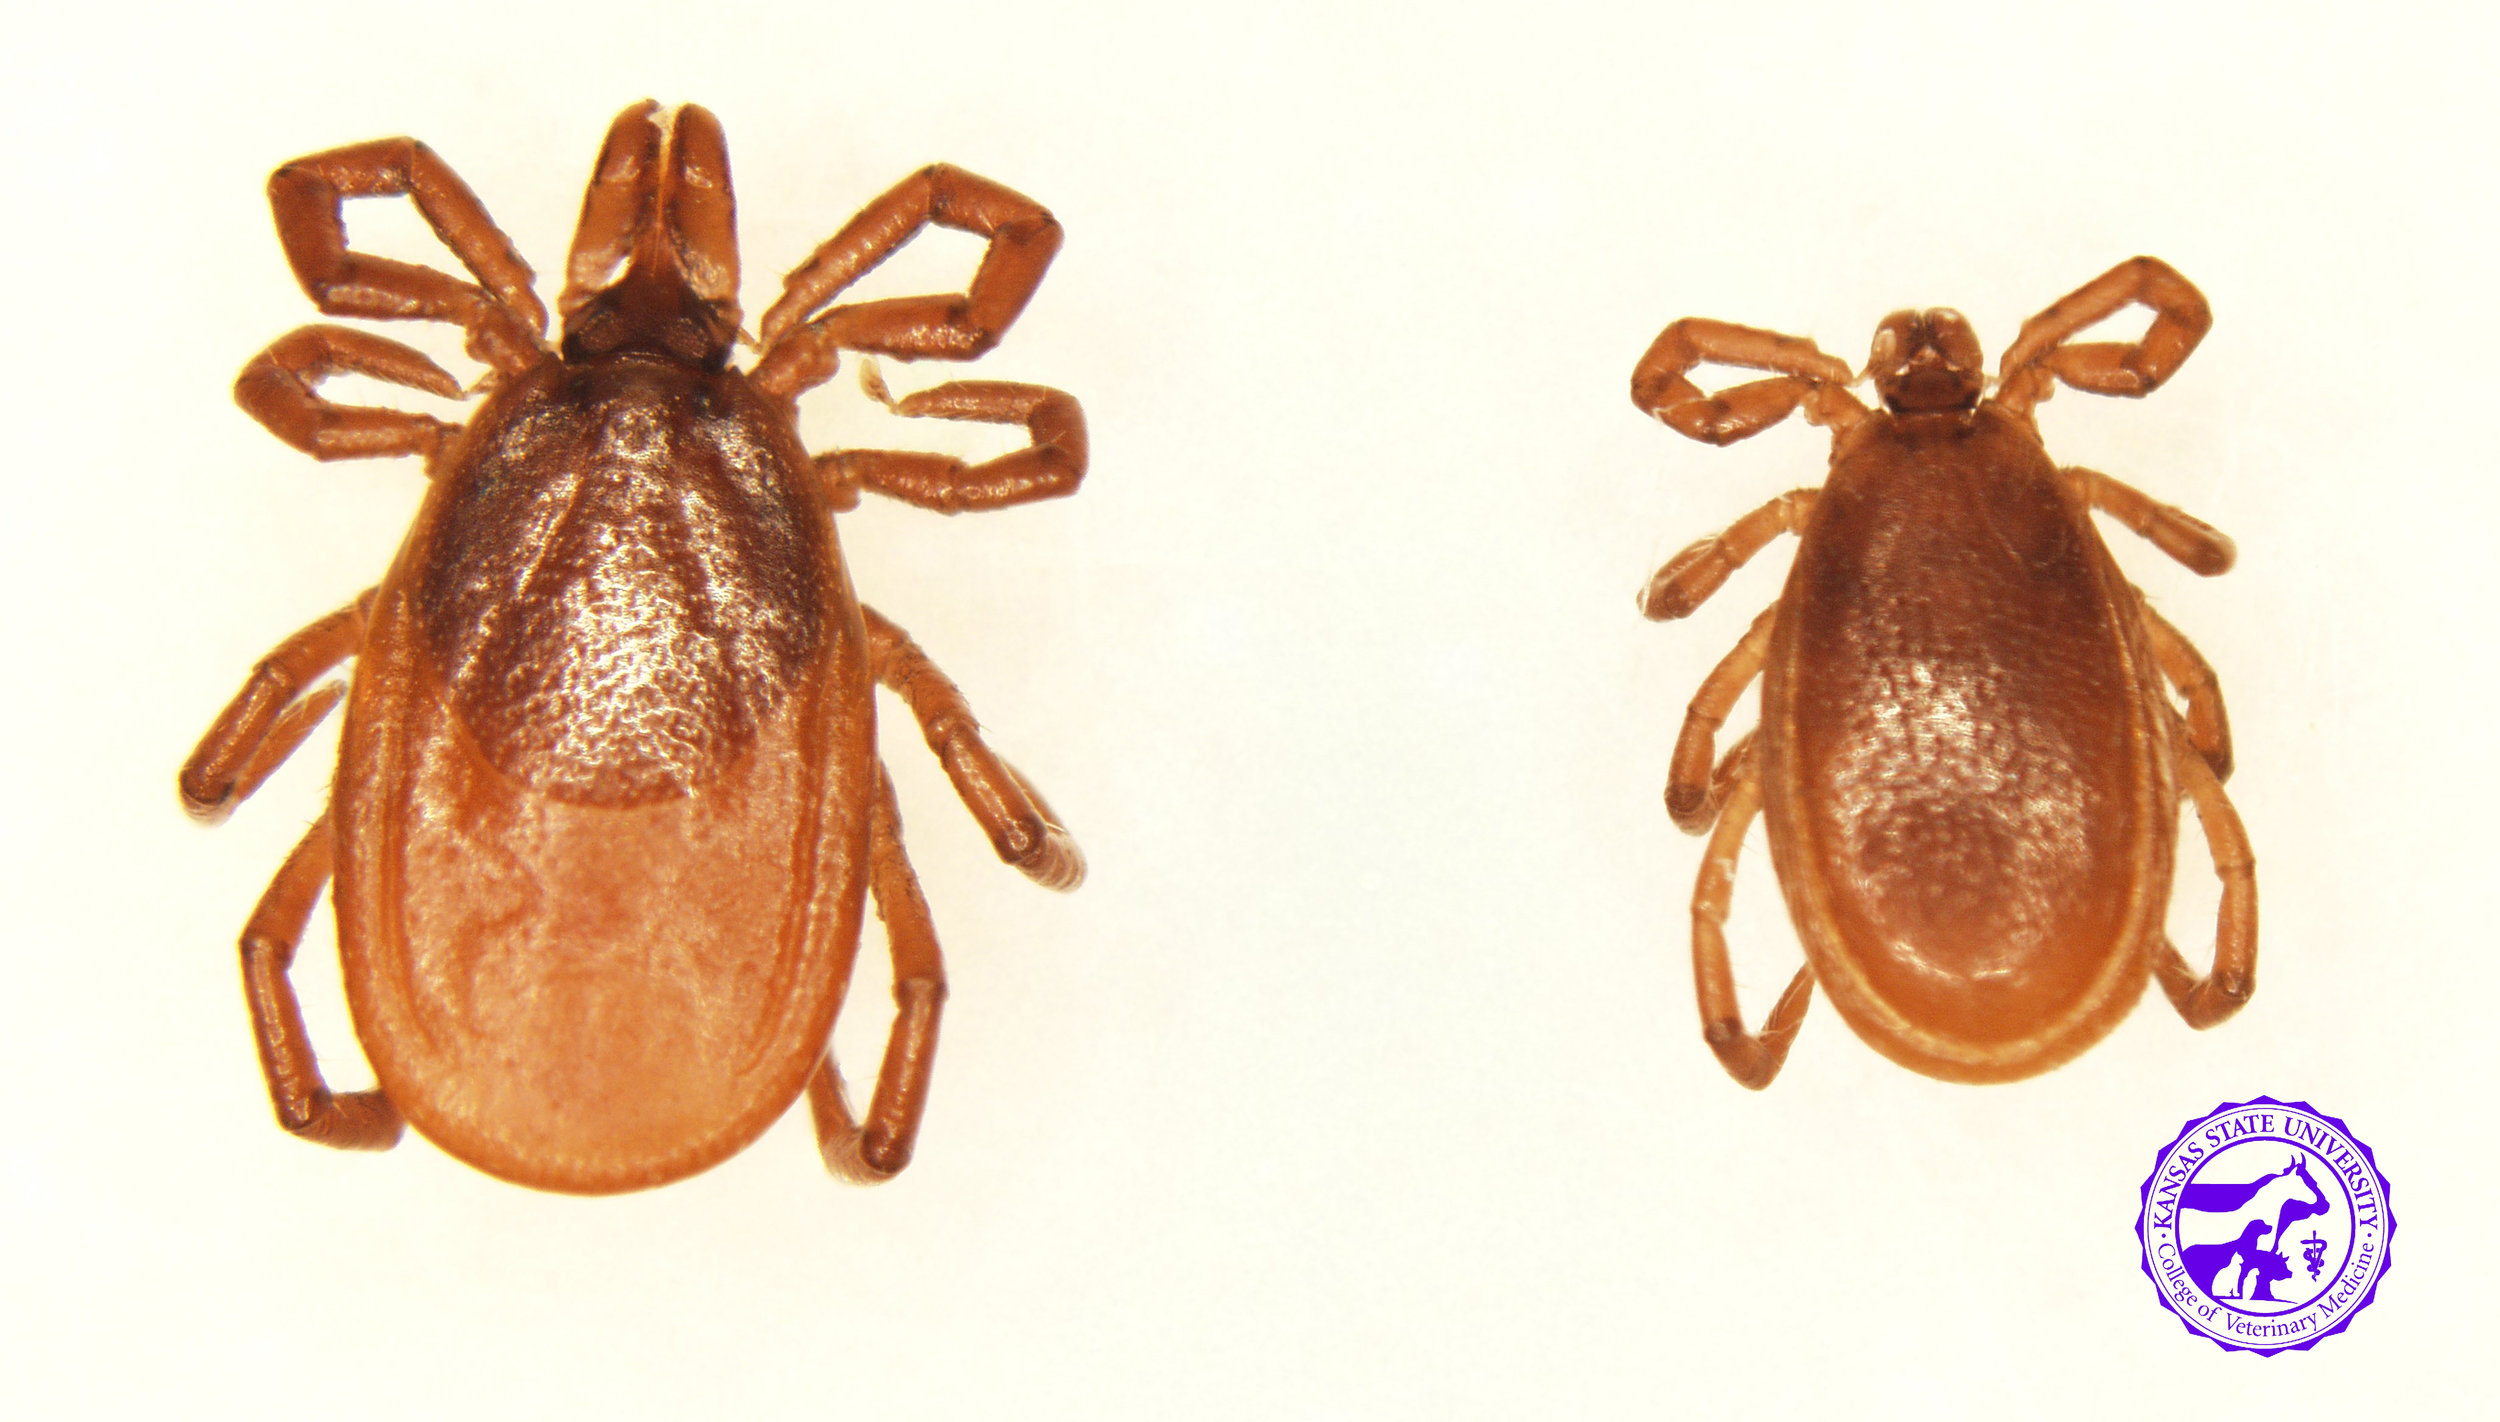 Deer Tick/ Western Black Legged Tick   Ixodes scapularis / Ixodes pacificus   These ticks look identical, and DNA must be analyzed to accurately identify.   Range -  I. scapularis-  throughout the eastern US   I. pacificus-  western coast of US   Active season - fall, winter   Disease transmission to horses-  Lyme disease, Equine Granulocytic Anaplasmosis   Disease transmission to humans-  Lyme disease, Anaplasmosis, Powassan virus, Babesiosis